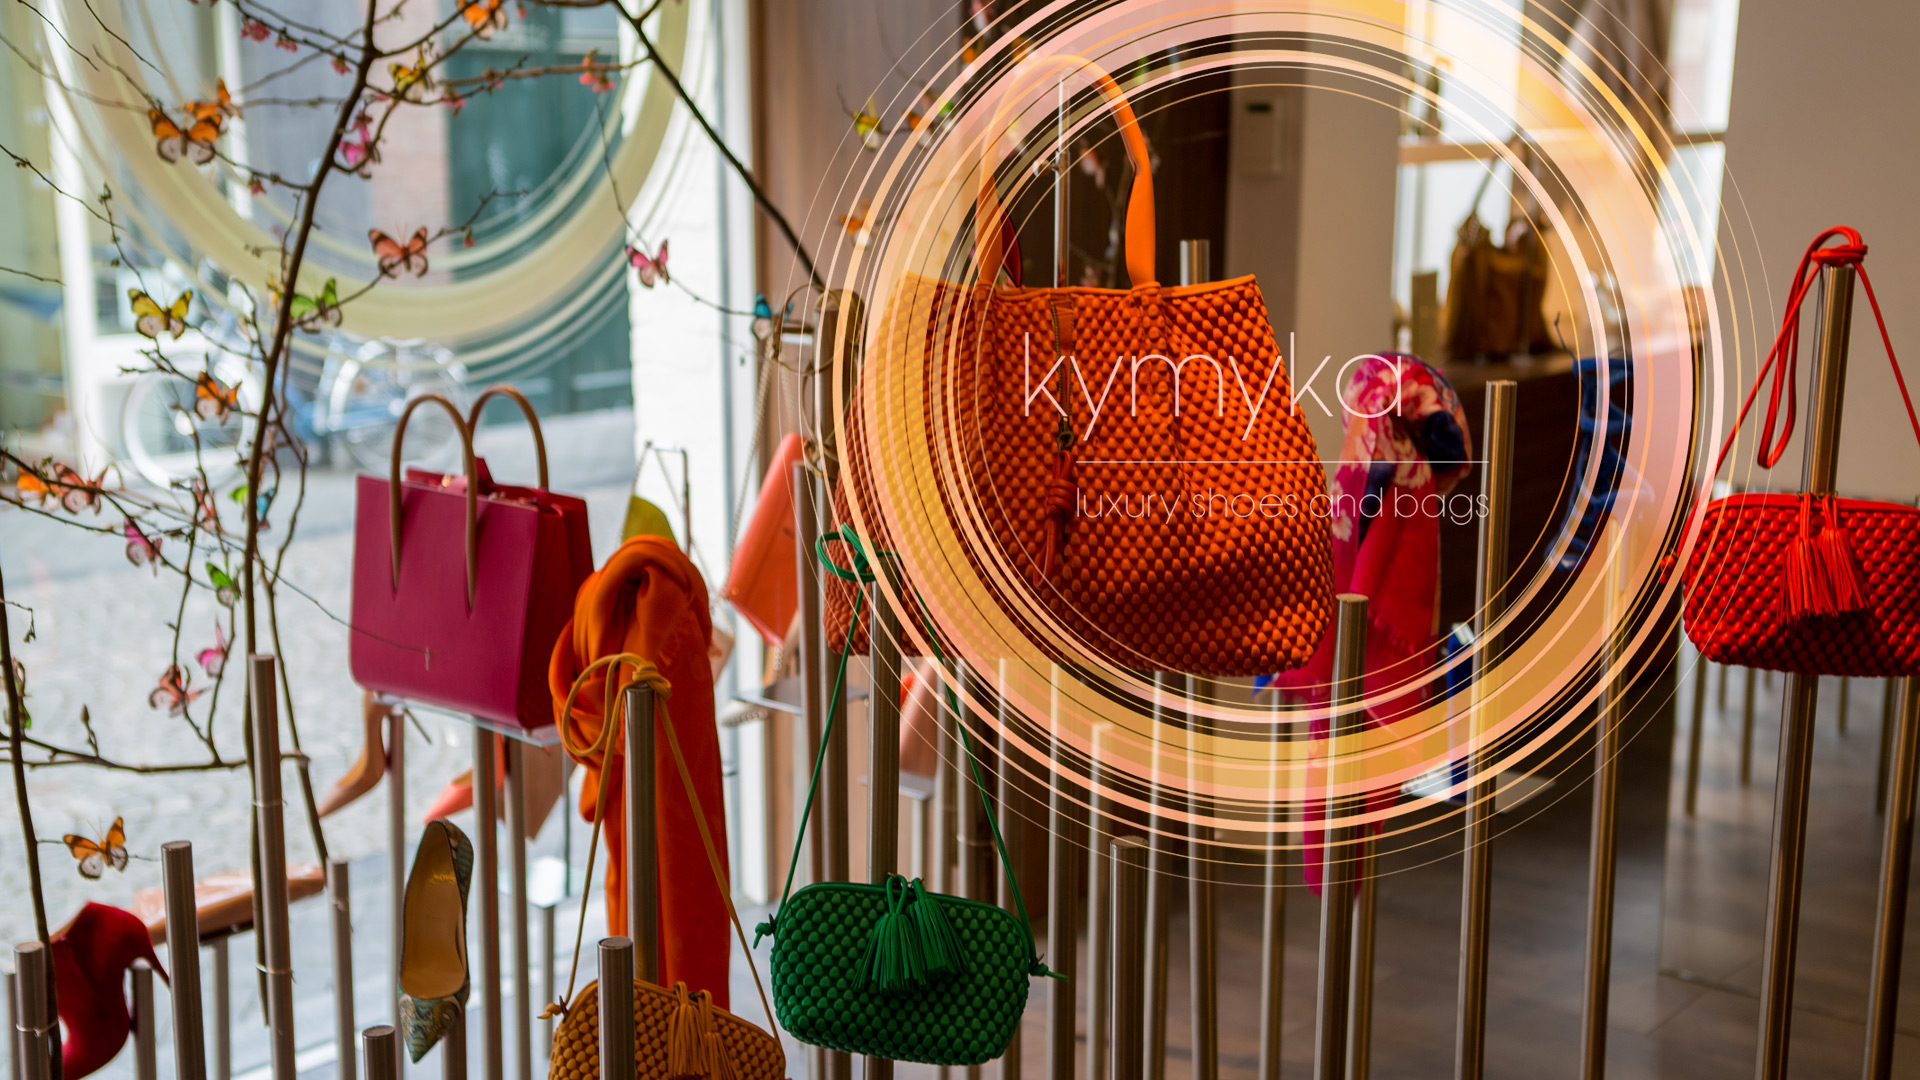 Kymyka Luxury Shoes and Bags